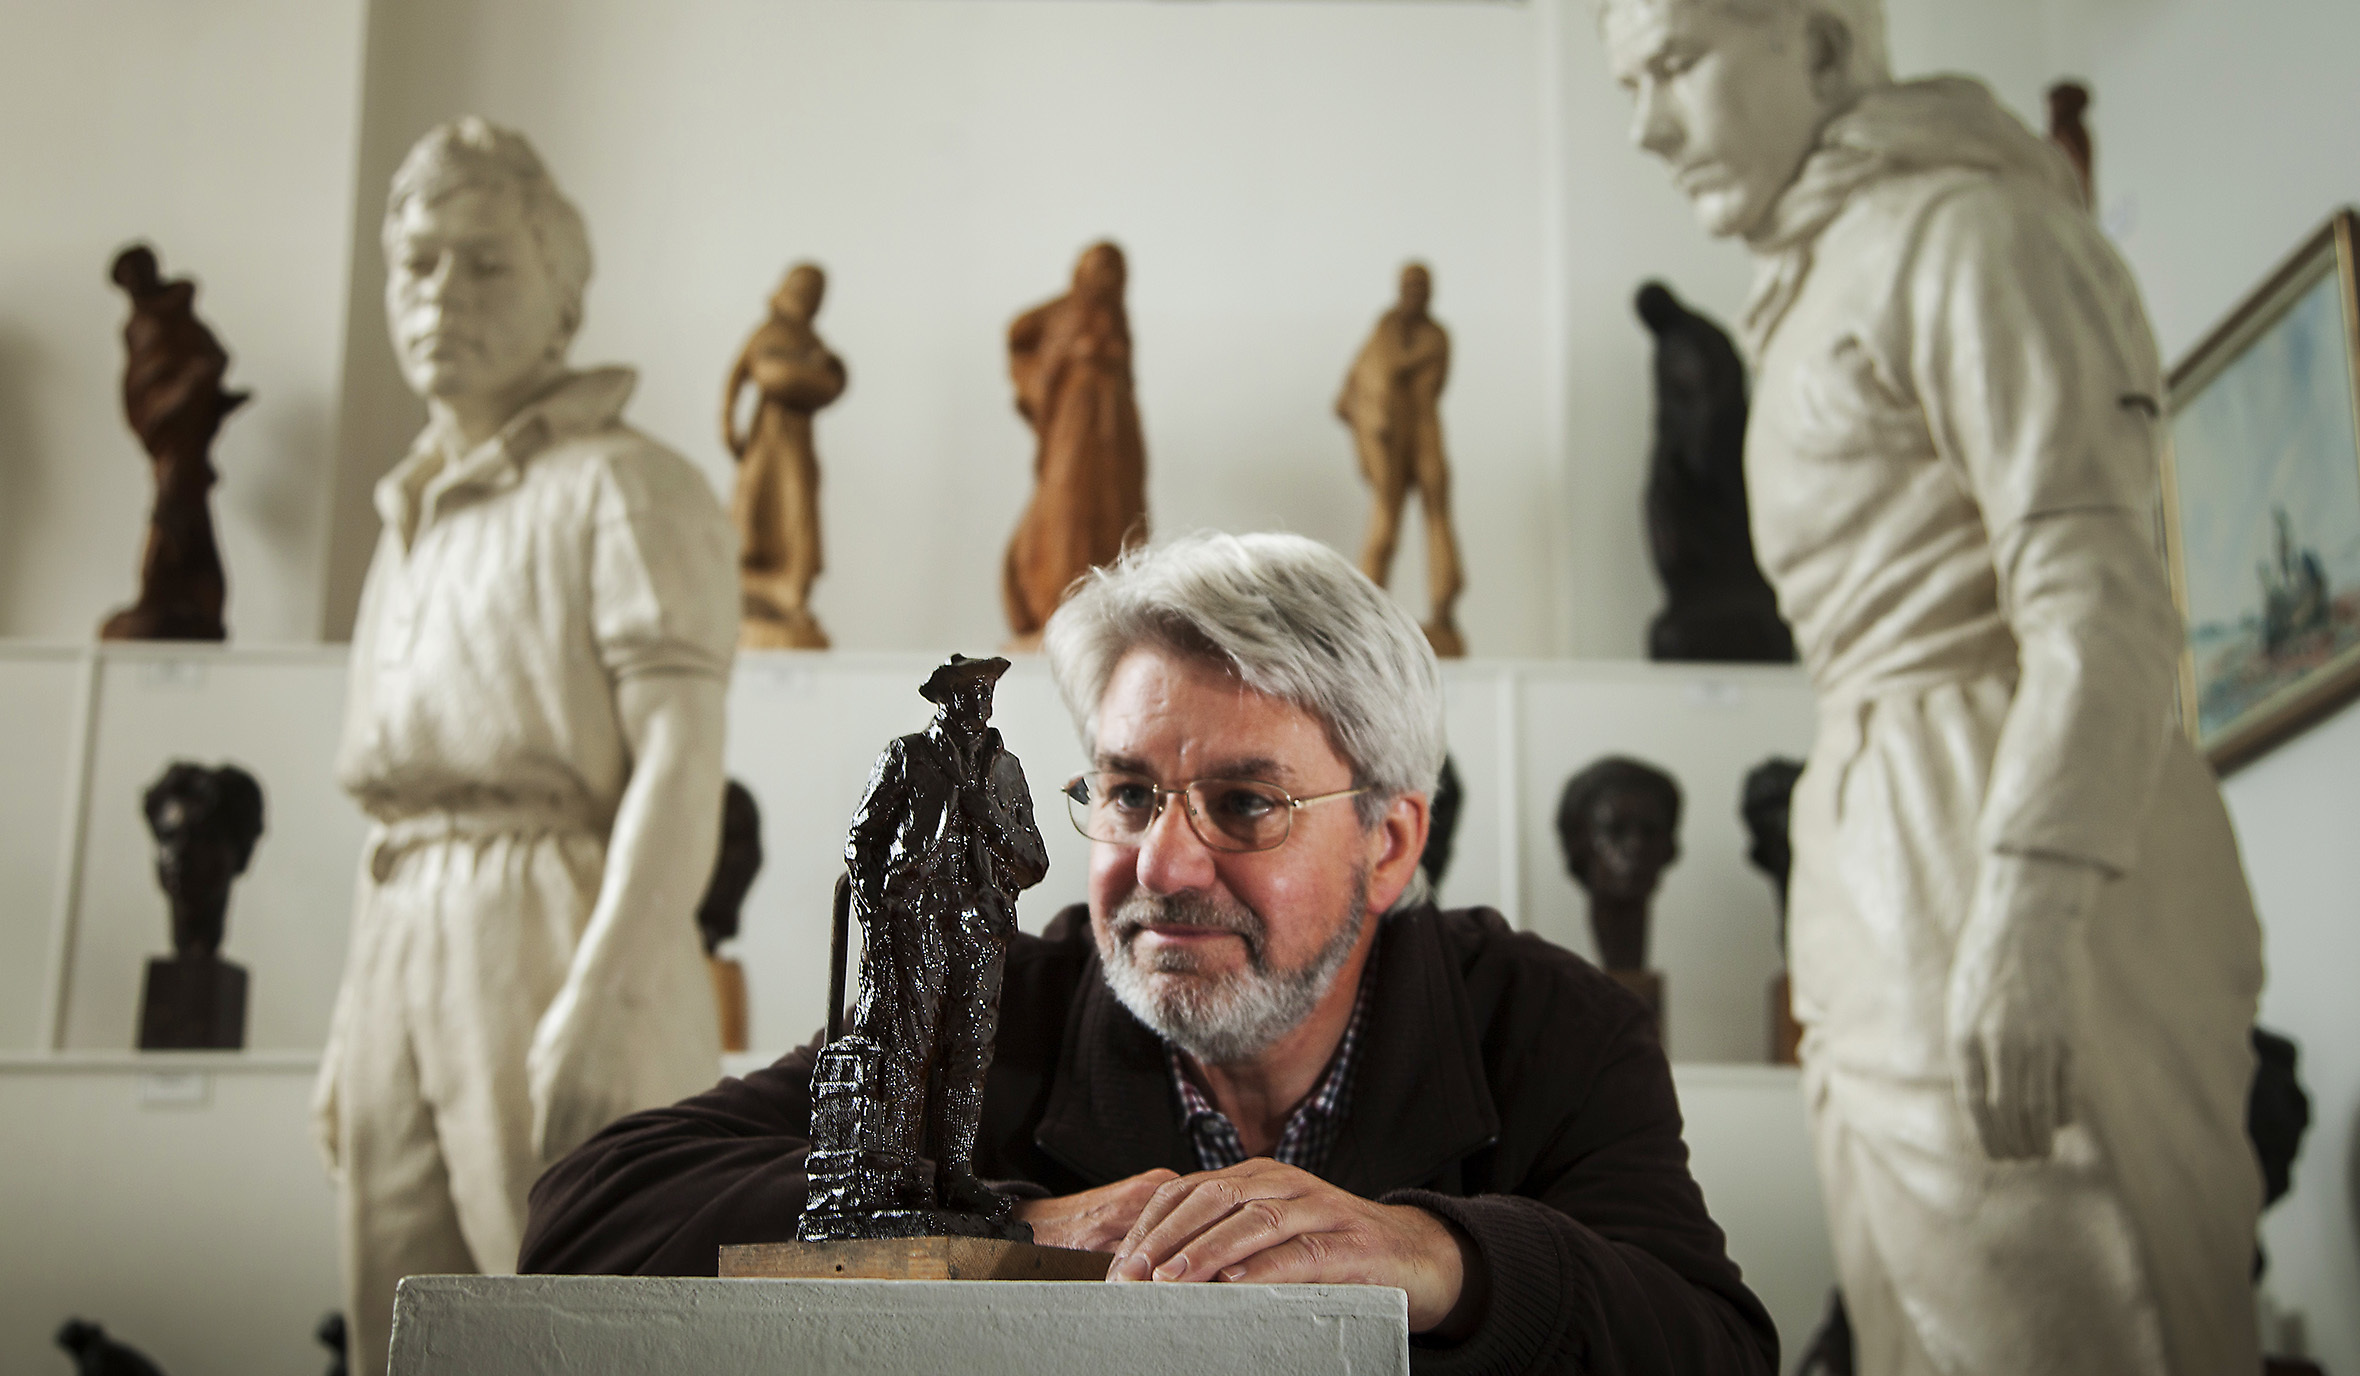 Norman Atkinson OBE with the plasticine figure, which will be stored after casting.